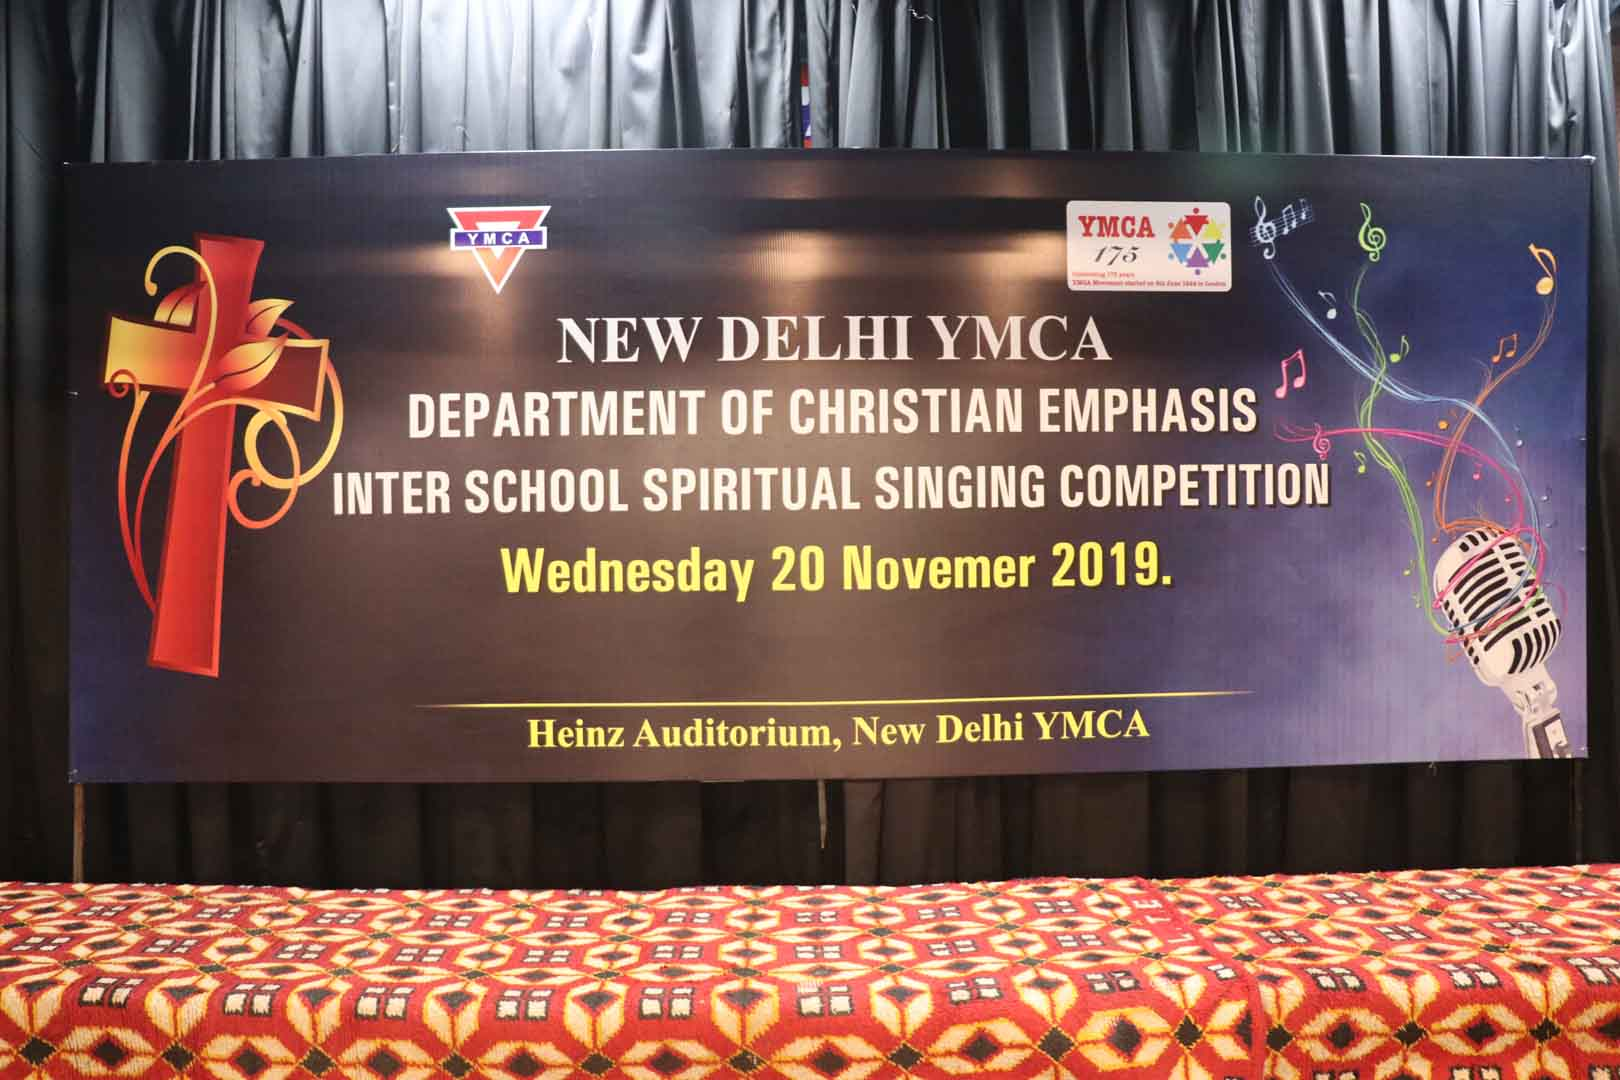 INTER SCHOOL SPIRITUAL SINGING COMPETITION 20 NOV 2019